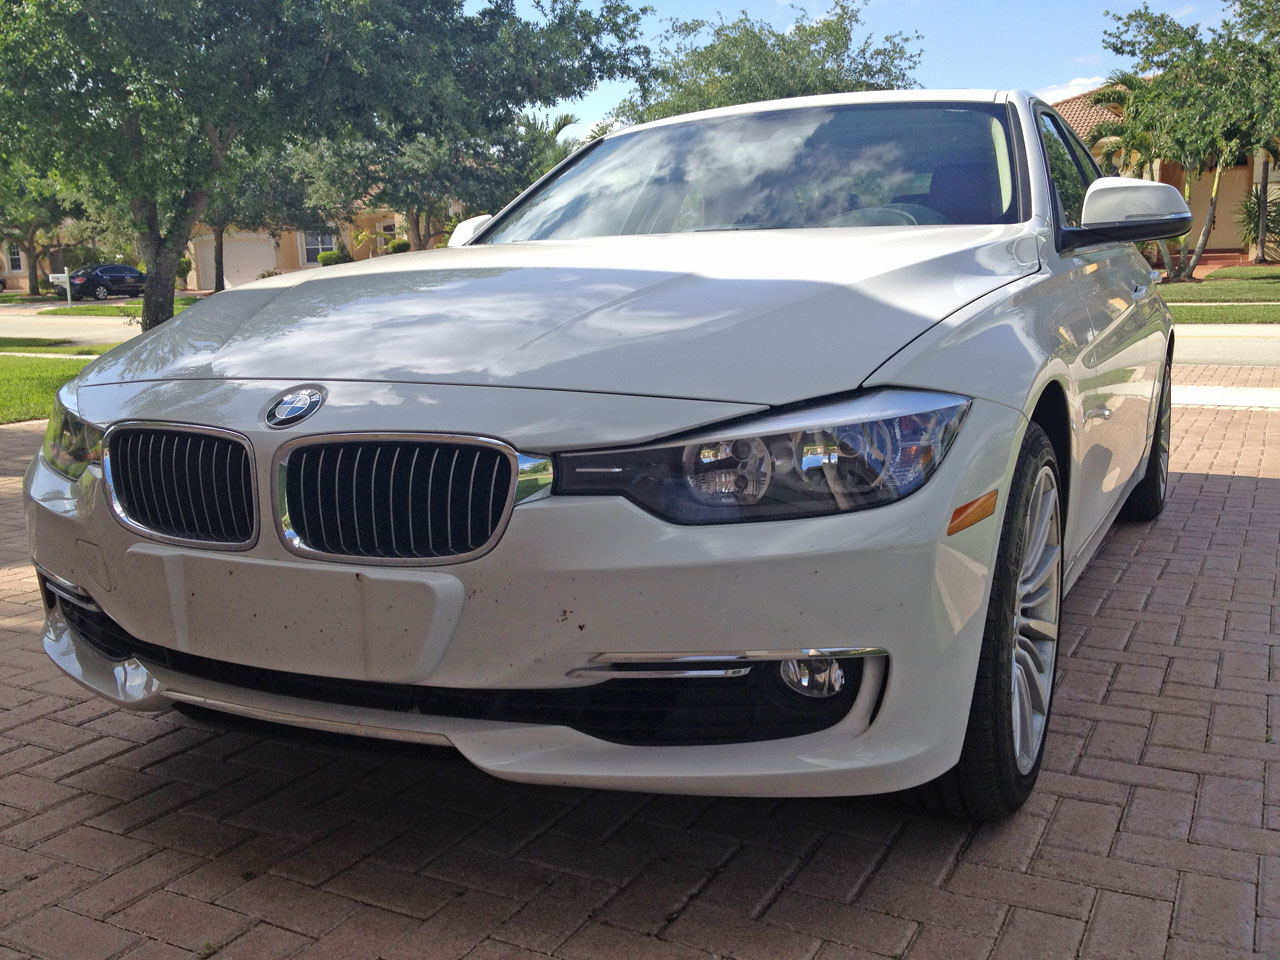 White 2012 BMW 328i TwinPower Turbo